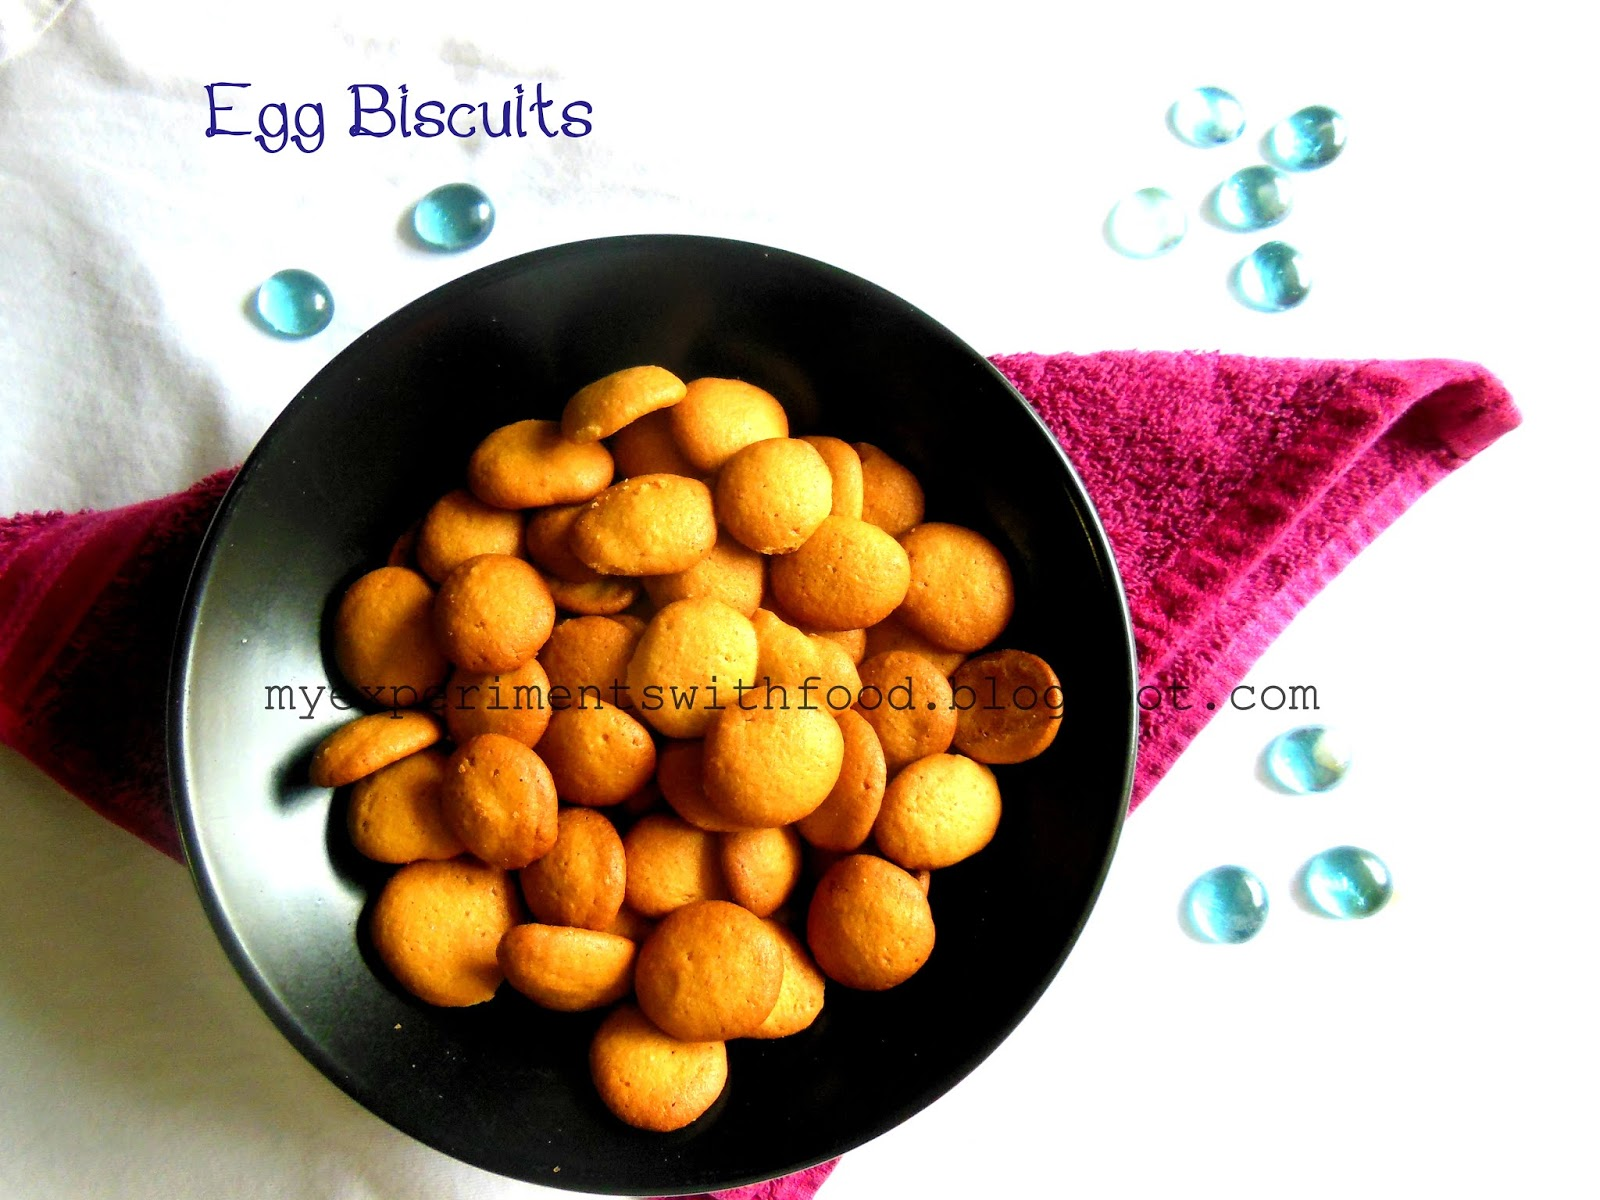 Kerala Bakery Style Egg Biscuits Coin Nasuha Blog Nastar By Pak Jojo Sby These Are Popular Snacks Which Can Be Found In Almost All The Bakeries As A Small Kid I Used To Eat Often Whenever We Go